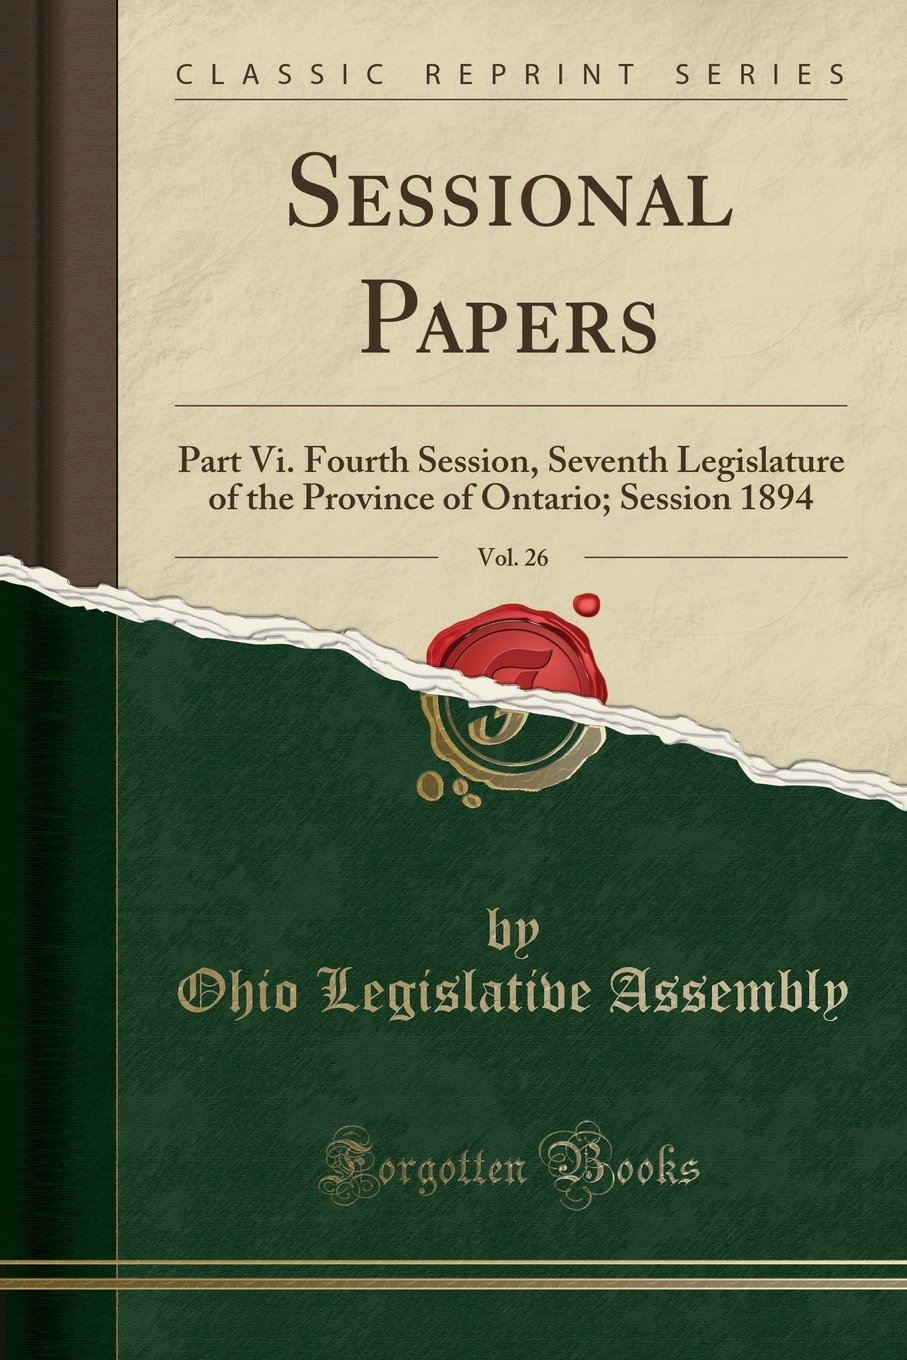 Sessional Papers, Vol. 26: Part Vi. Fourth Session, Seventh Legislature of the Province of Ontario; Session 1894 (Classic Reprint) PDF